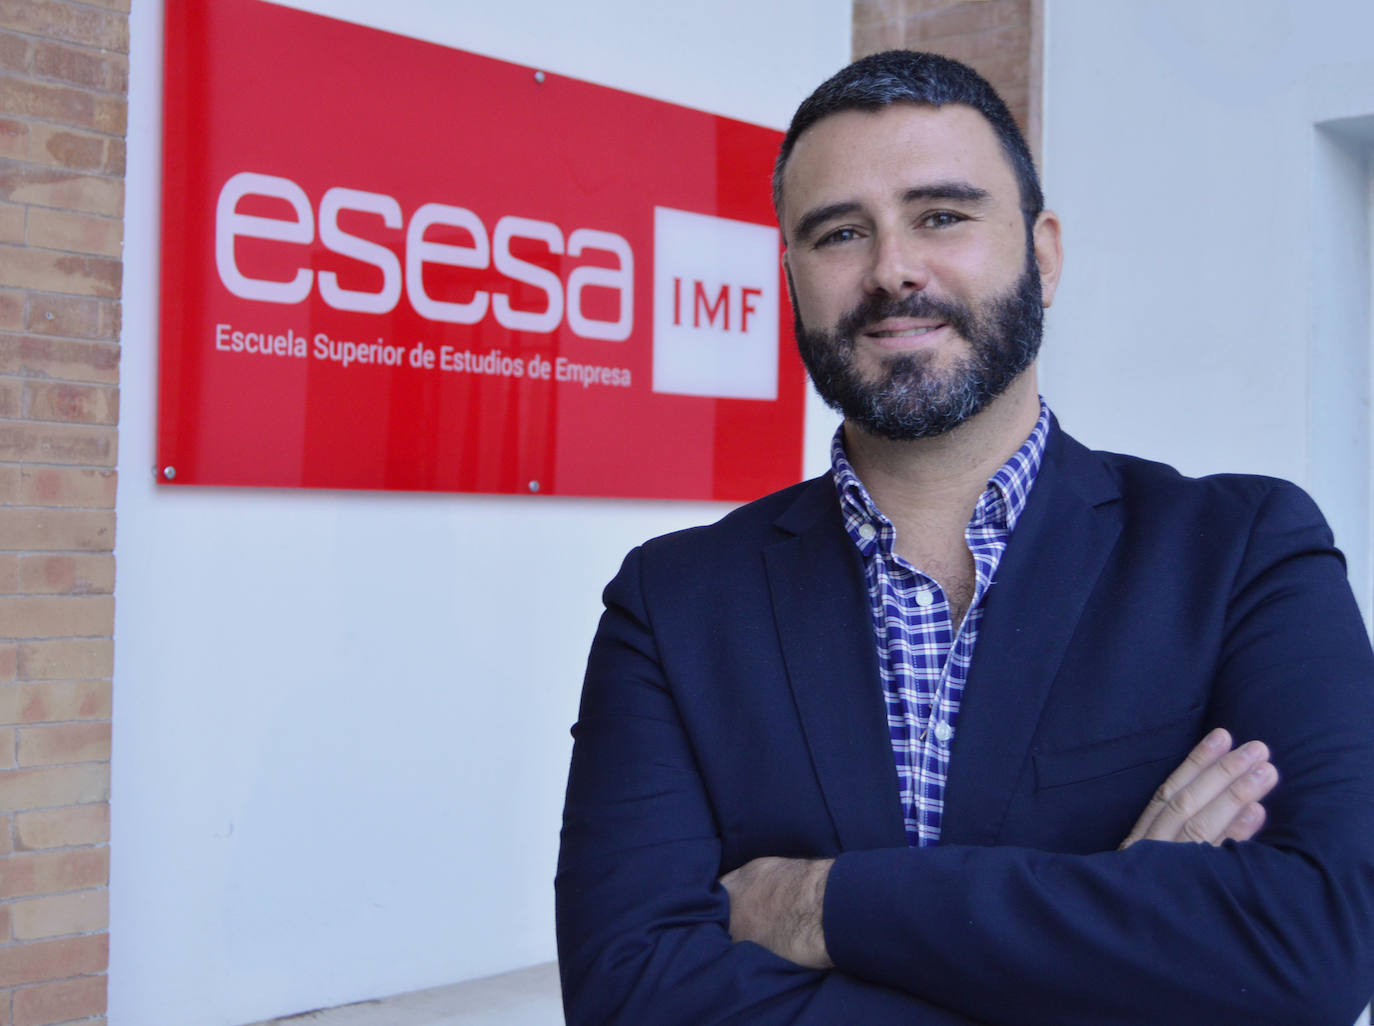 Alfonso Pérez, director académico de Máster en Marketing Digital de ESESA IFM./ESESA IMF